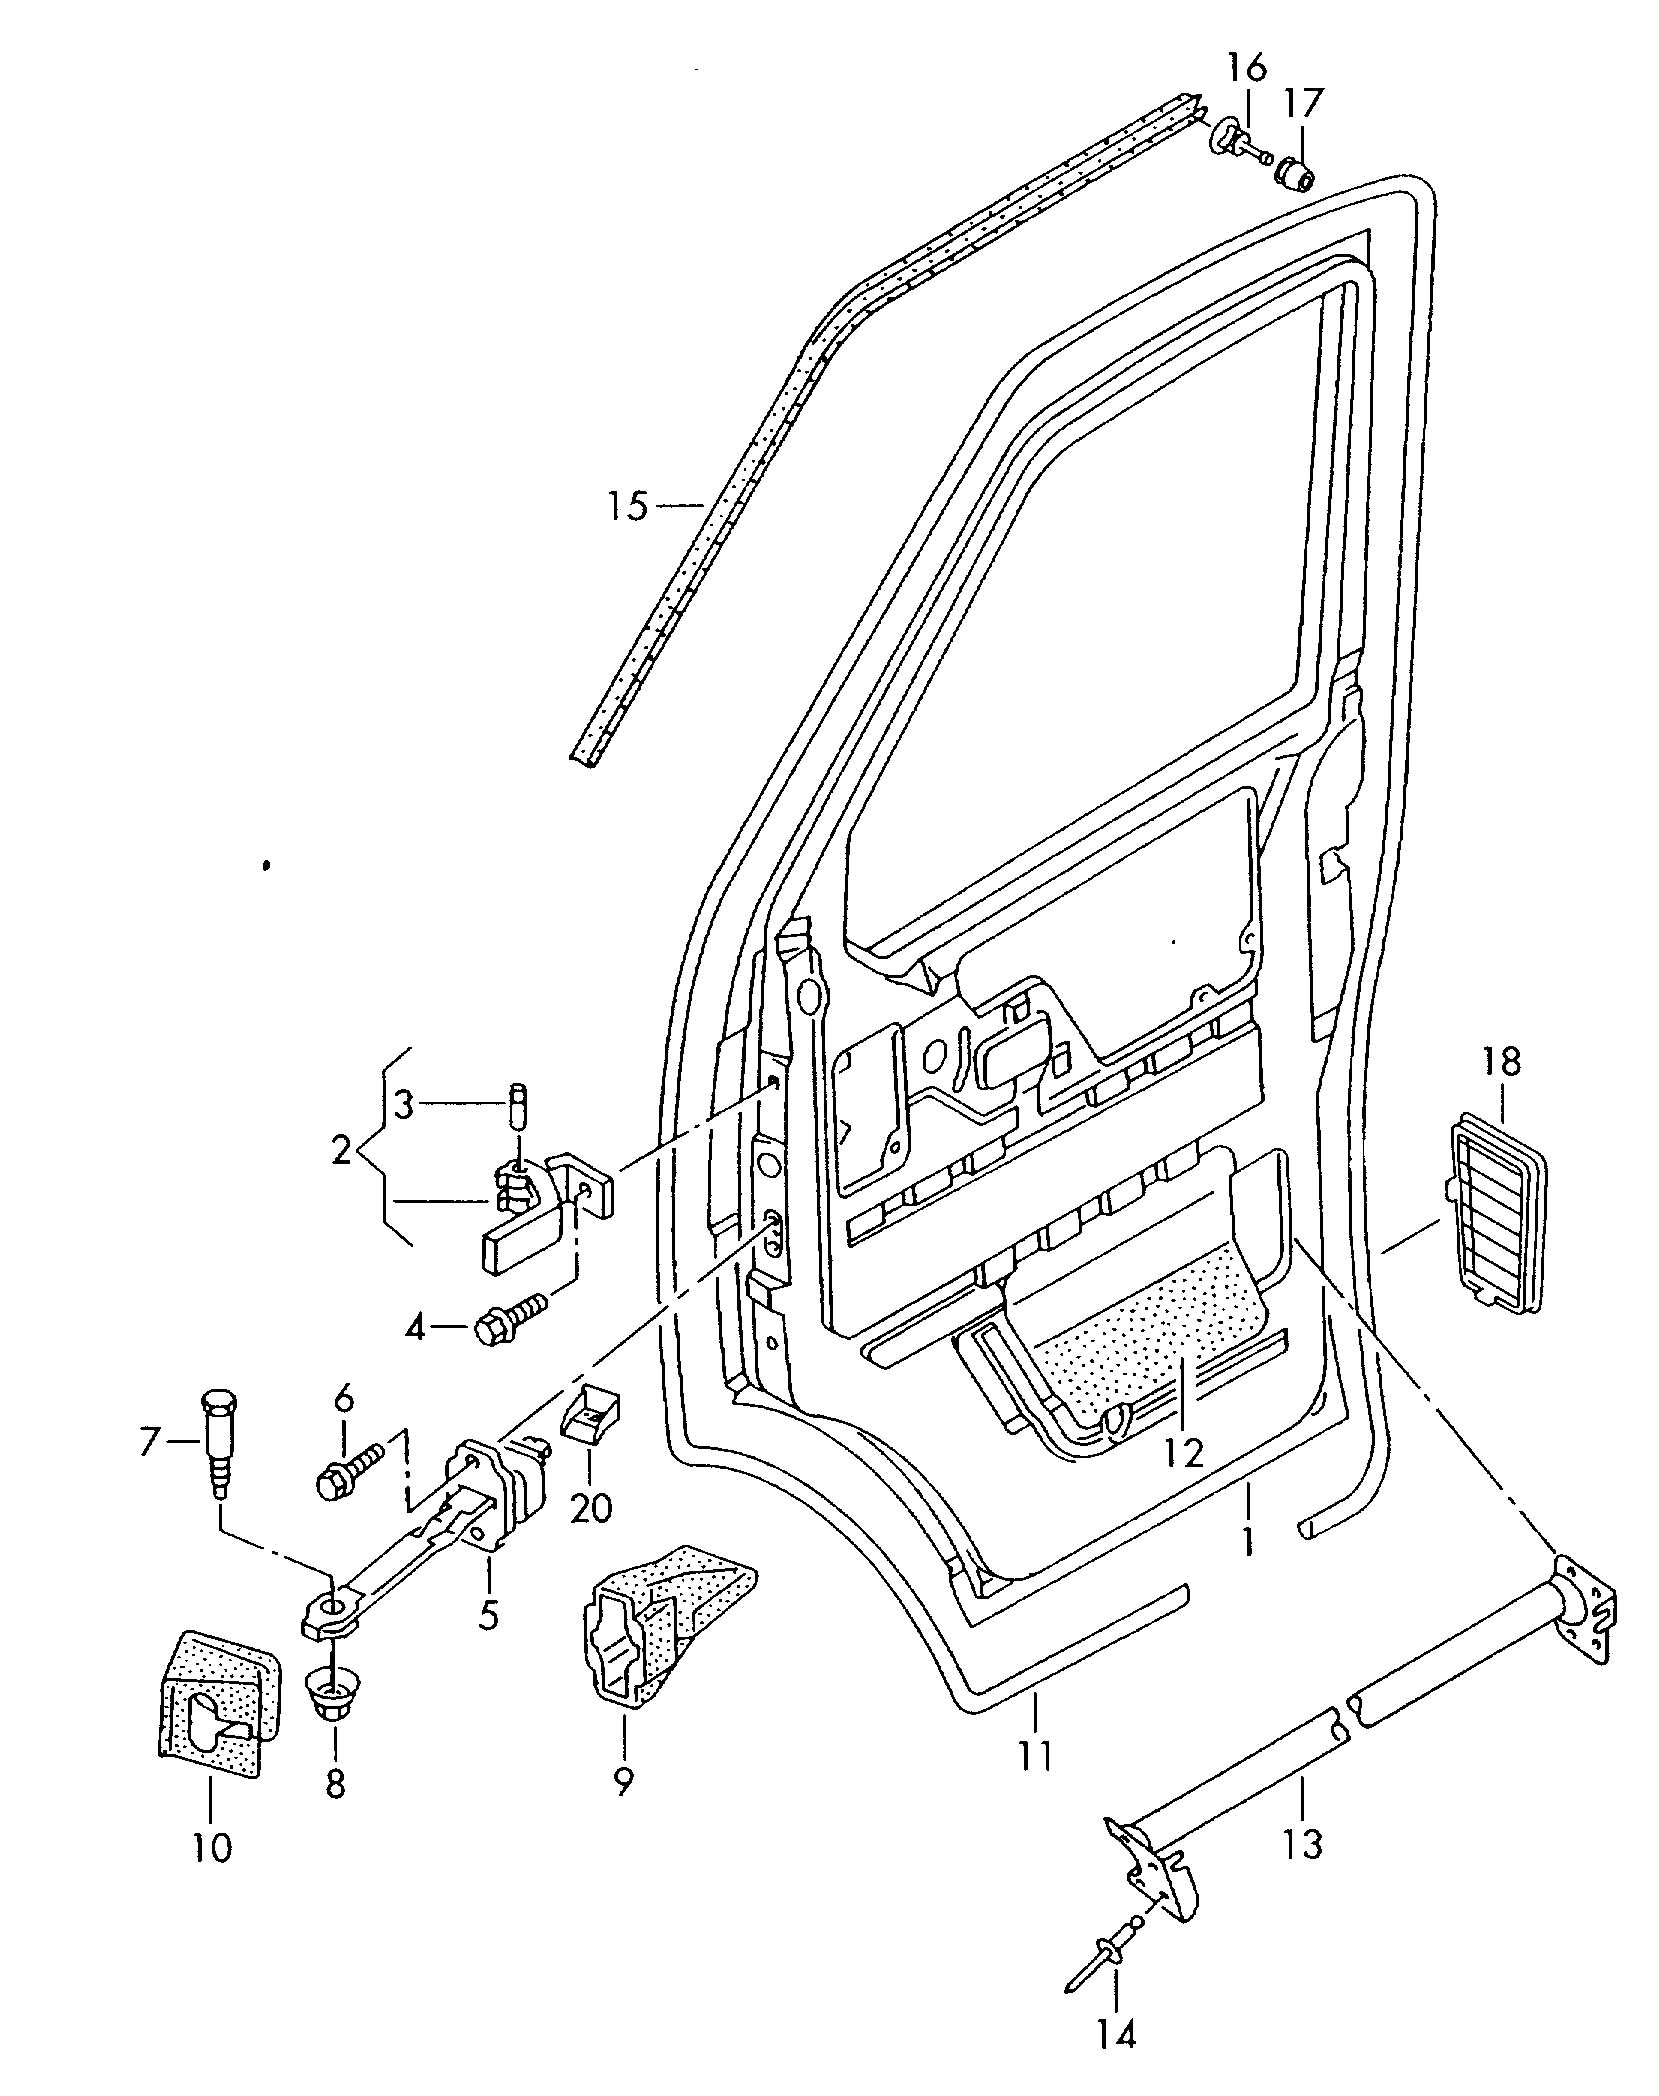 Vw T5 Diesel Engine Diagram Auto Electrical Wiring Cub Cadet 126 For 2013 Toyota Tacoma Get Free